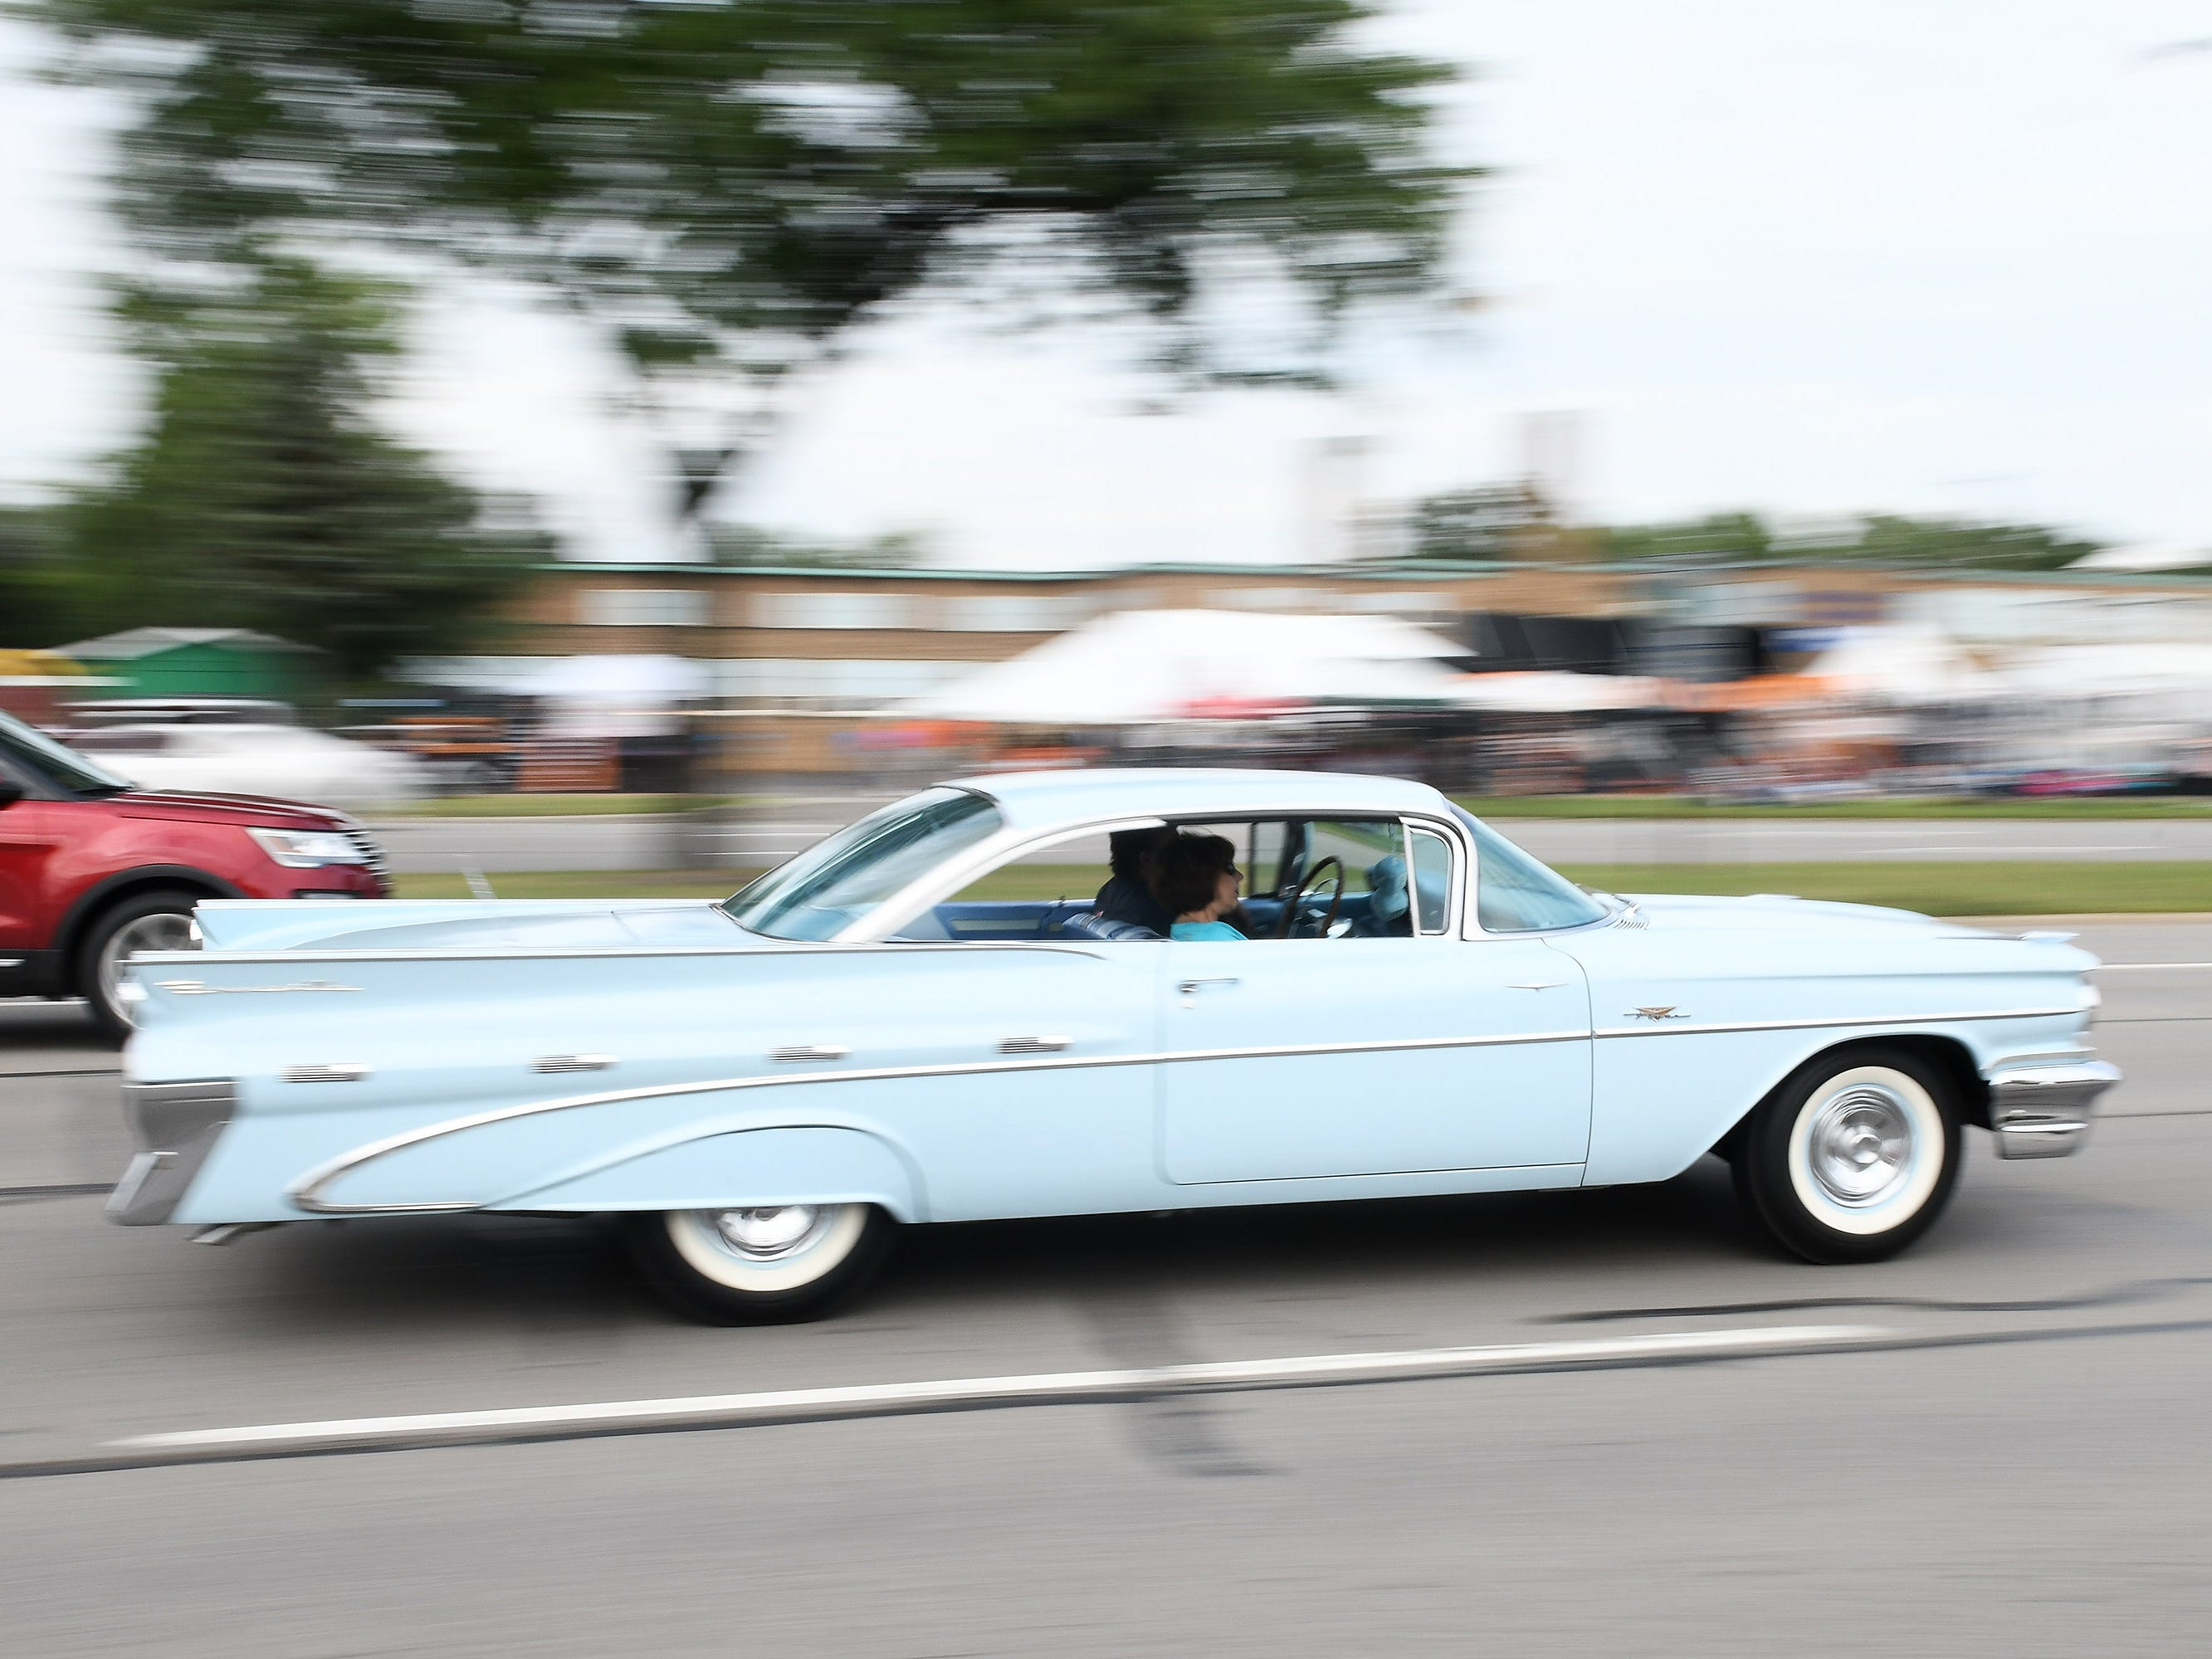 A classic car cruises Woodward.